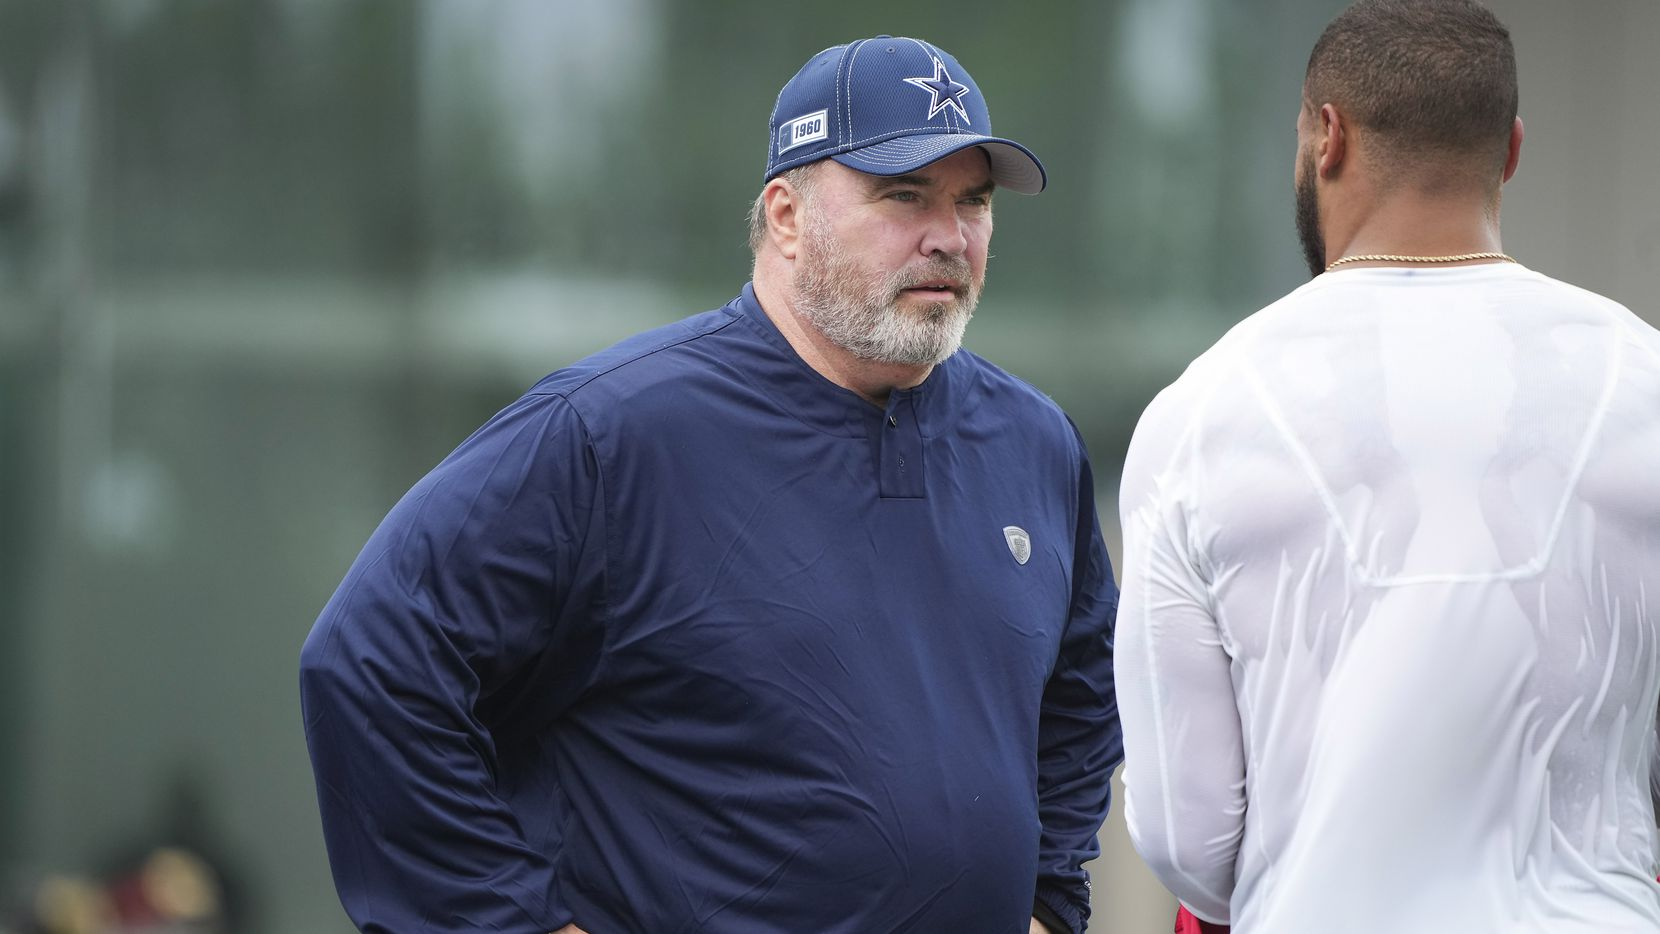 Dallas Cowboys head coach Mike McCarthy talks with quarterback Dak Prescott during a minicamp practice at The Star on Wednesday, June 9, 2021, in Frisco. (Smiley N. Pool/The Dallas Morning News)